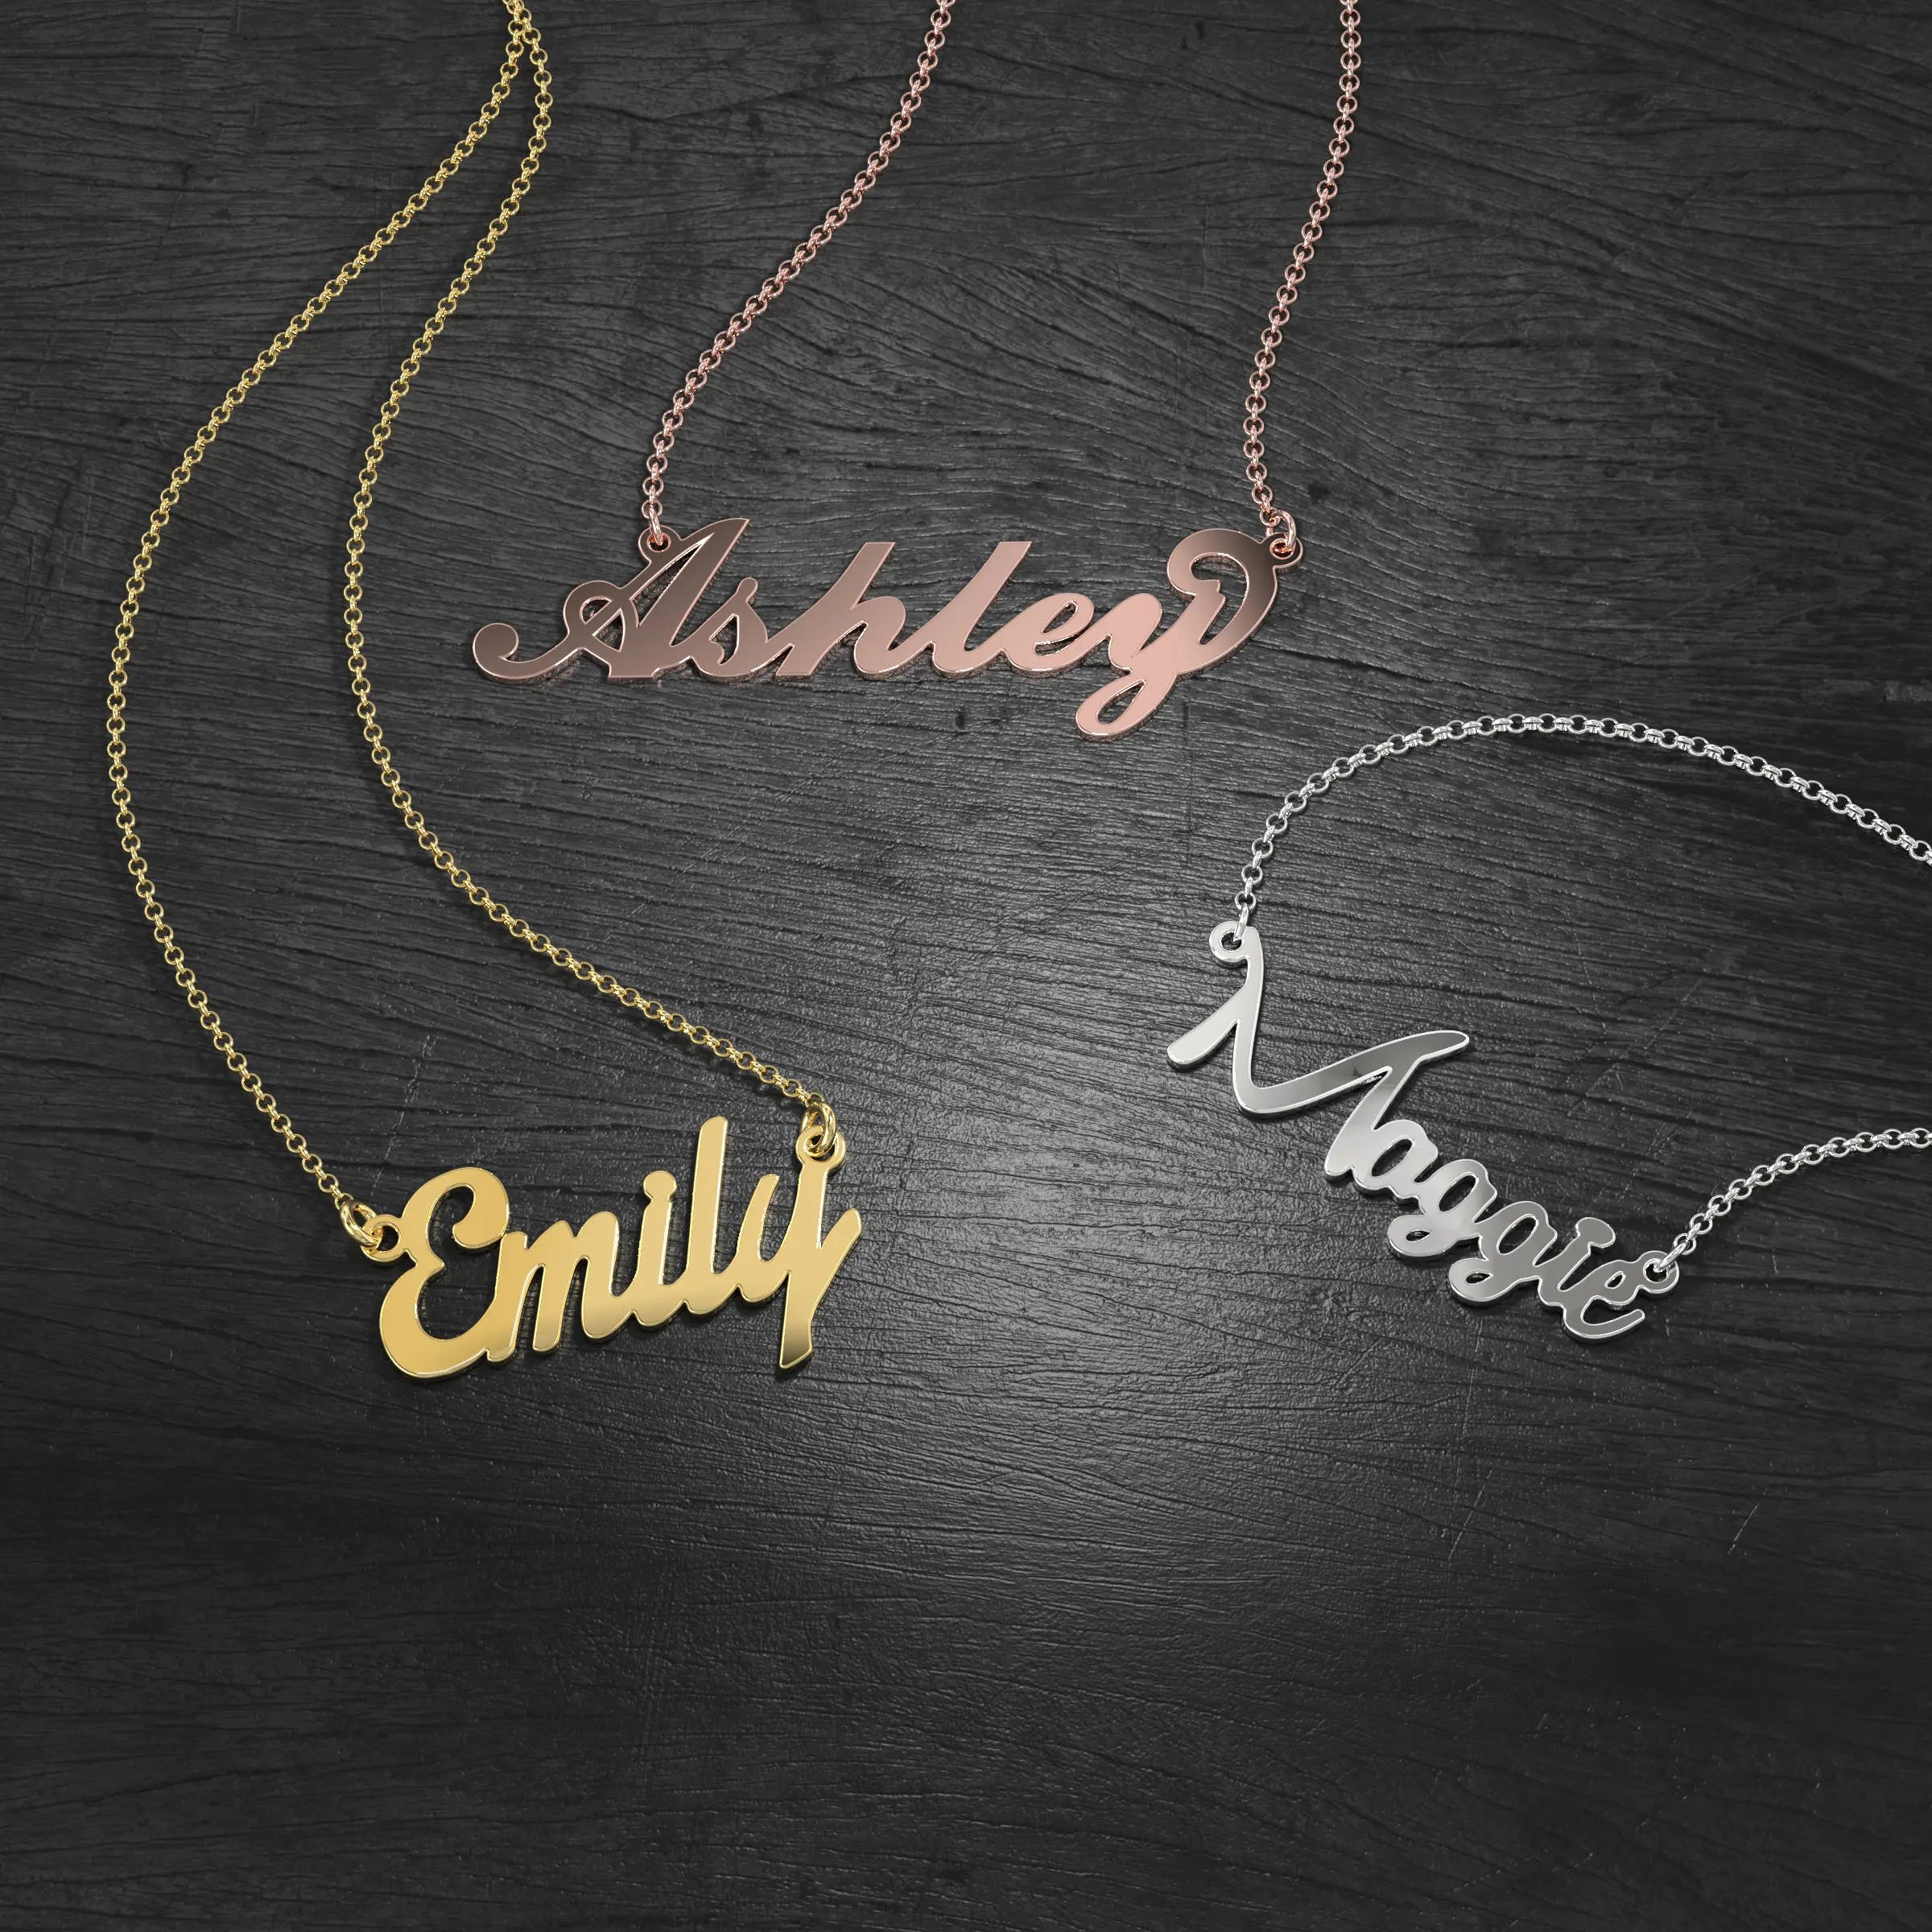 10K & 14K Solid Gold Never Plated Personalized Name image 7